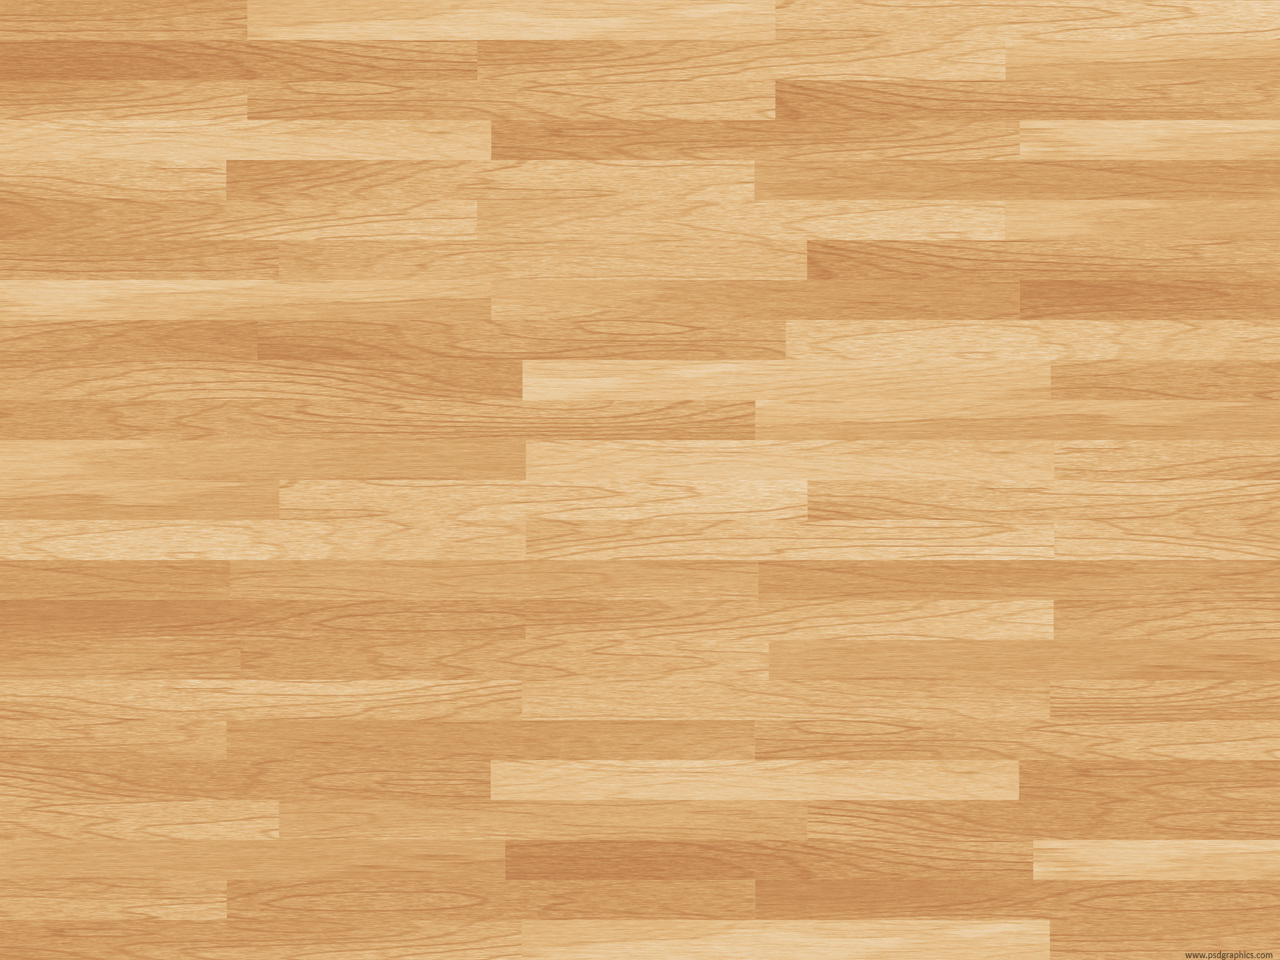 Hardwood floor clip art cliparts